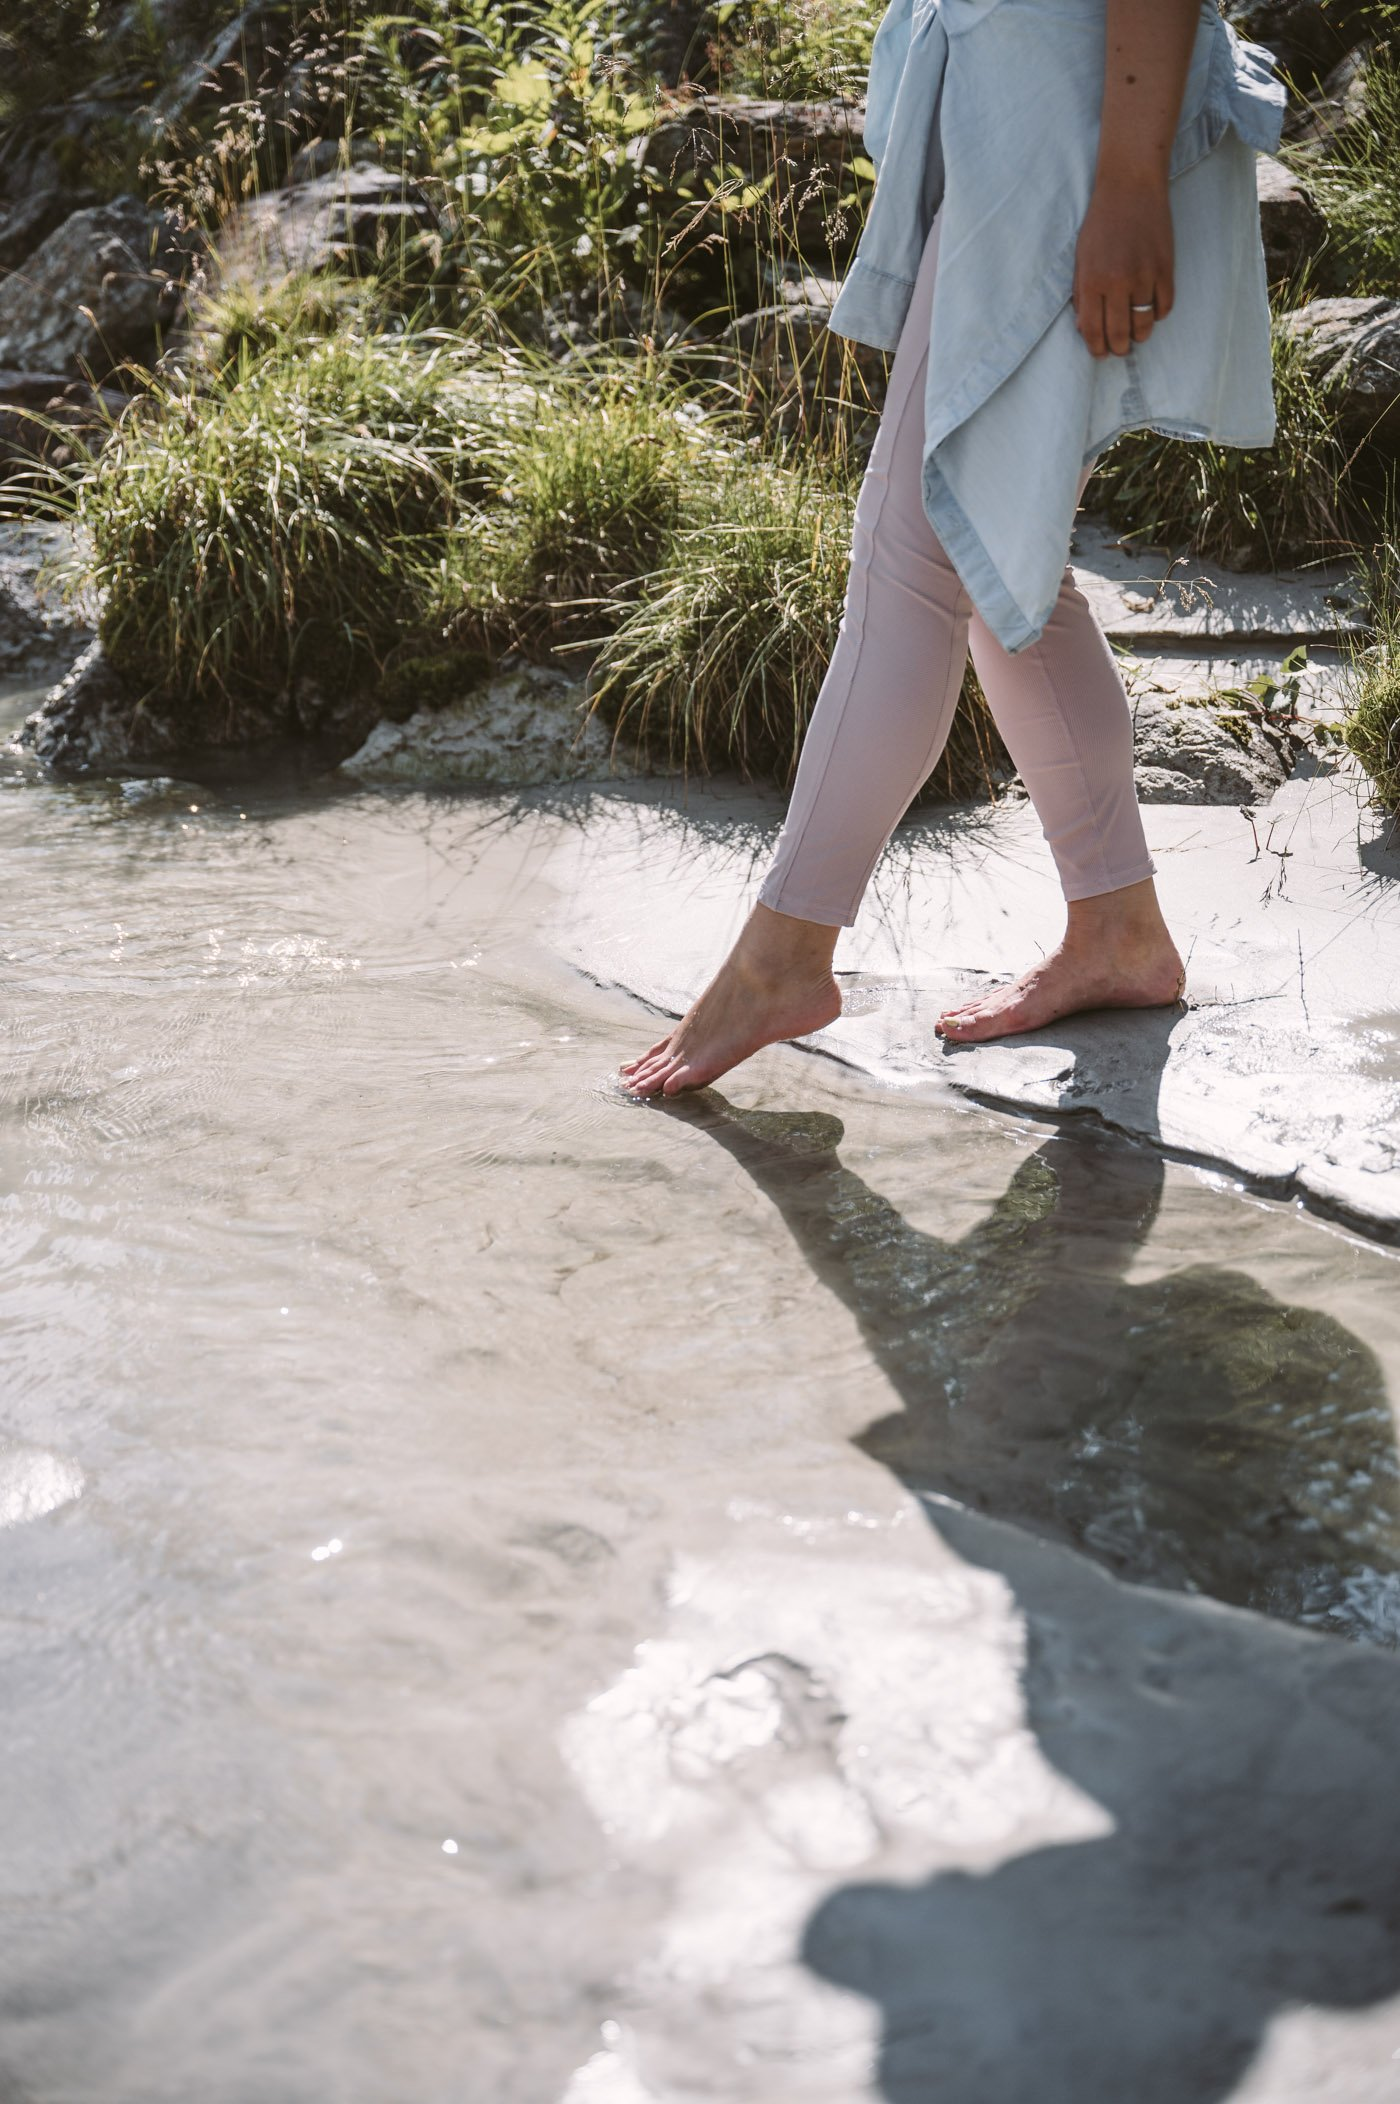 Kneippism in the glacial river in East Tyrol - part of mindful mountain experiences